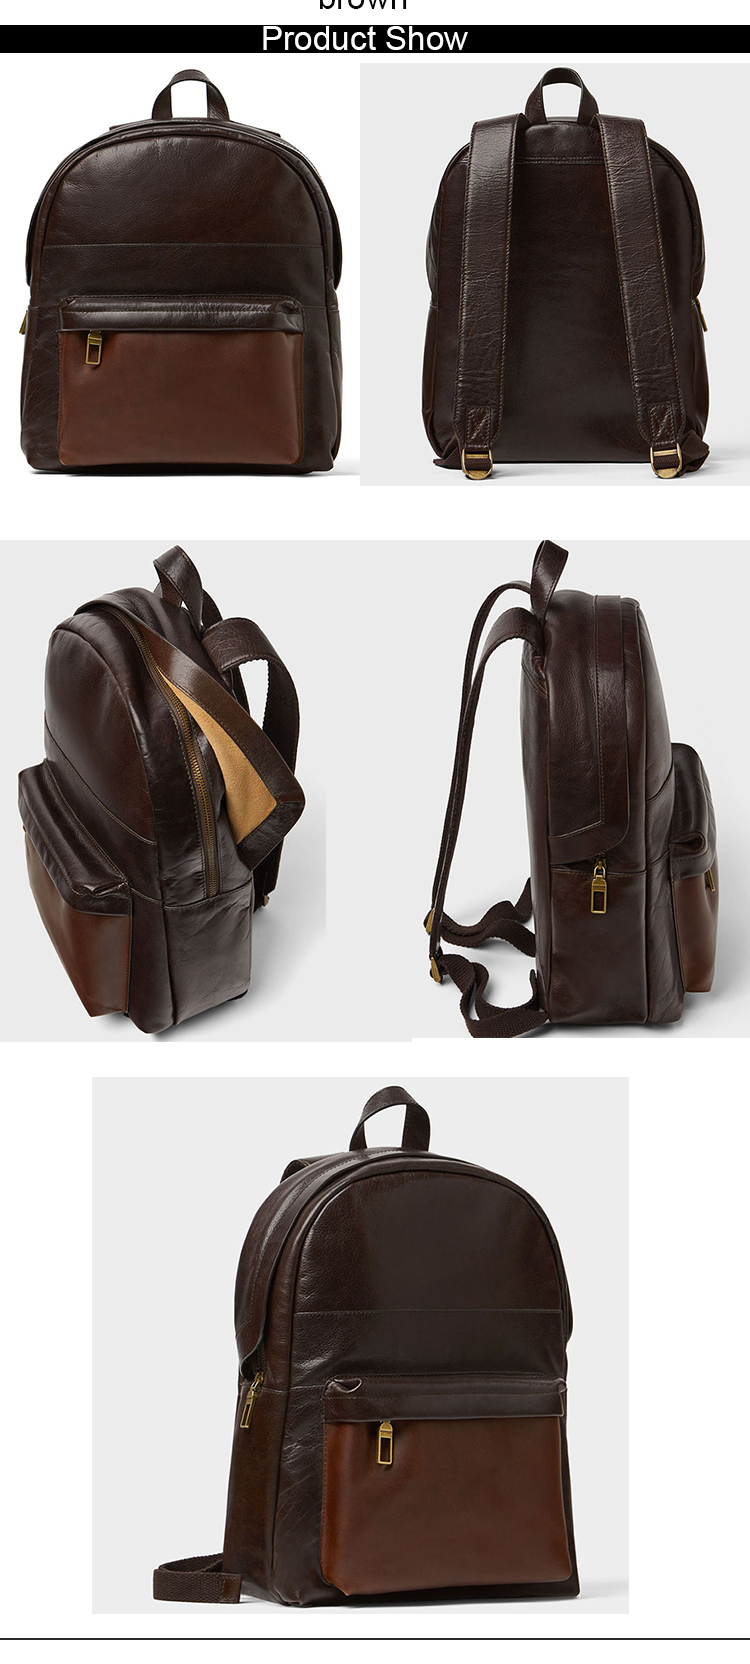 oem custom logo stylish men travel bags personalized logo waterproof backpacks